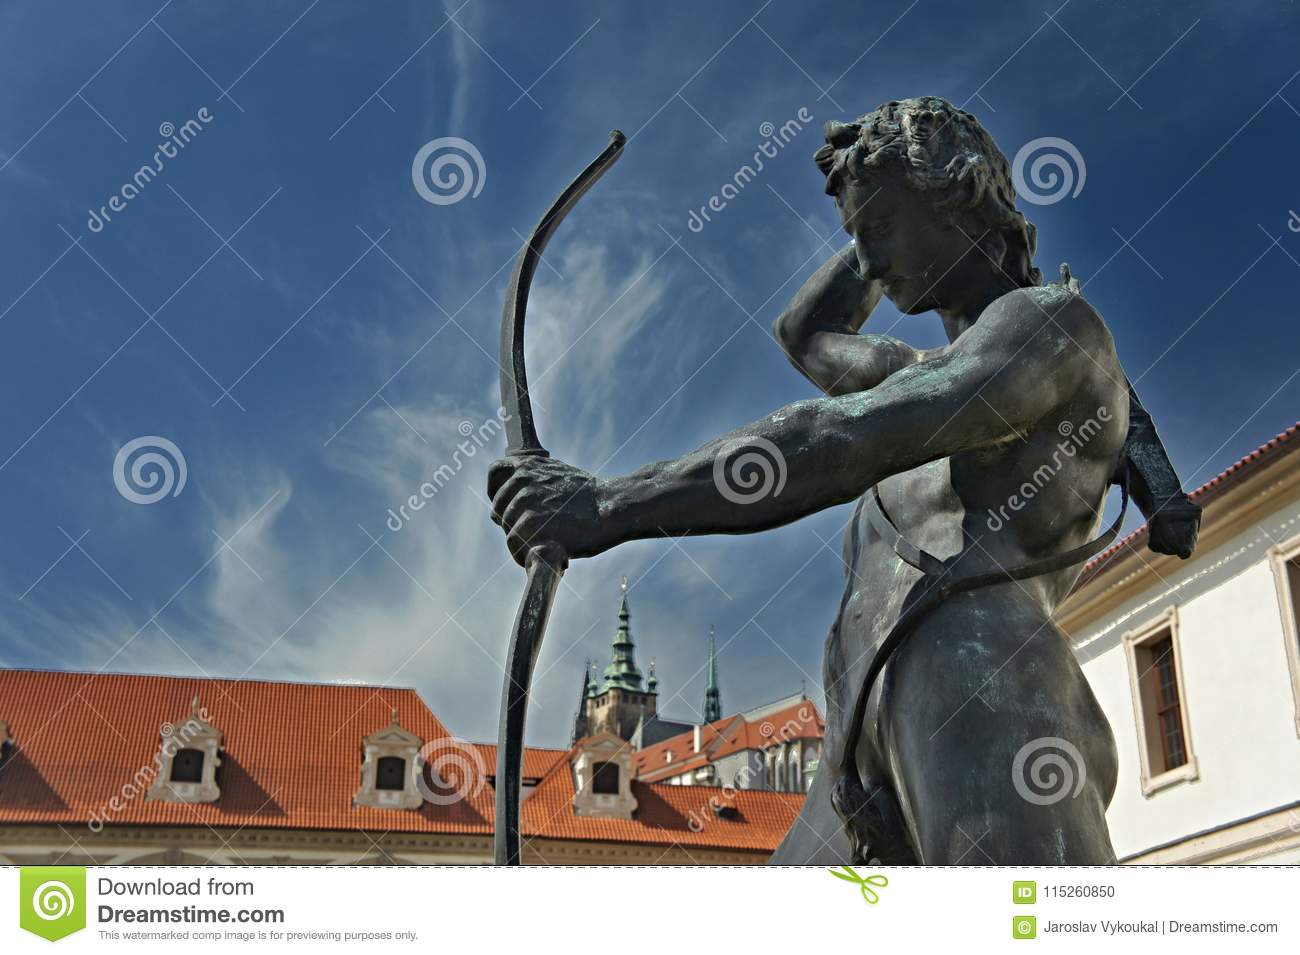 Garten Statue Best Of Statue Apollo In Waldstein Garden Mala Strana Prague